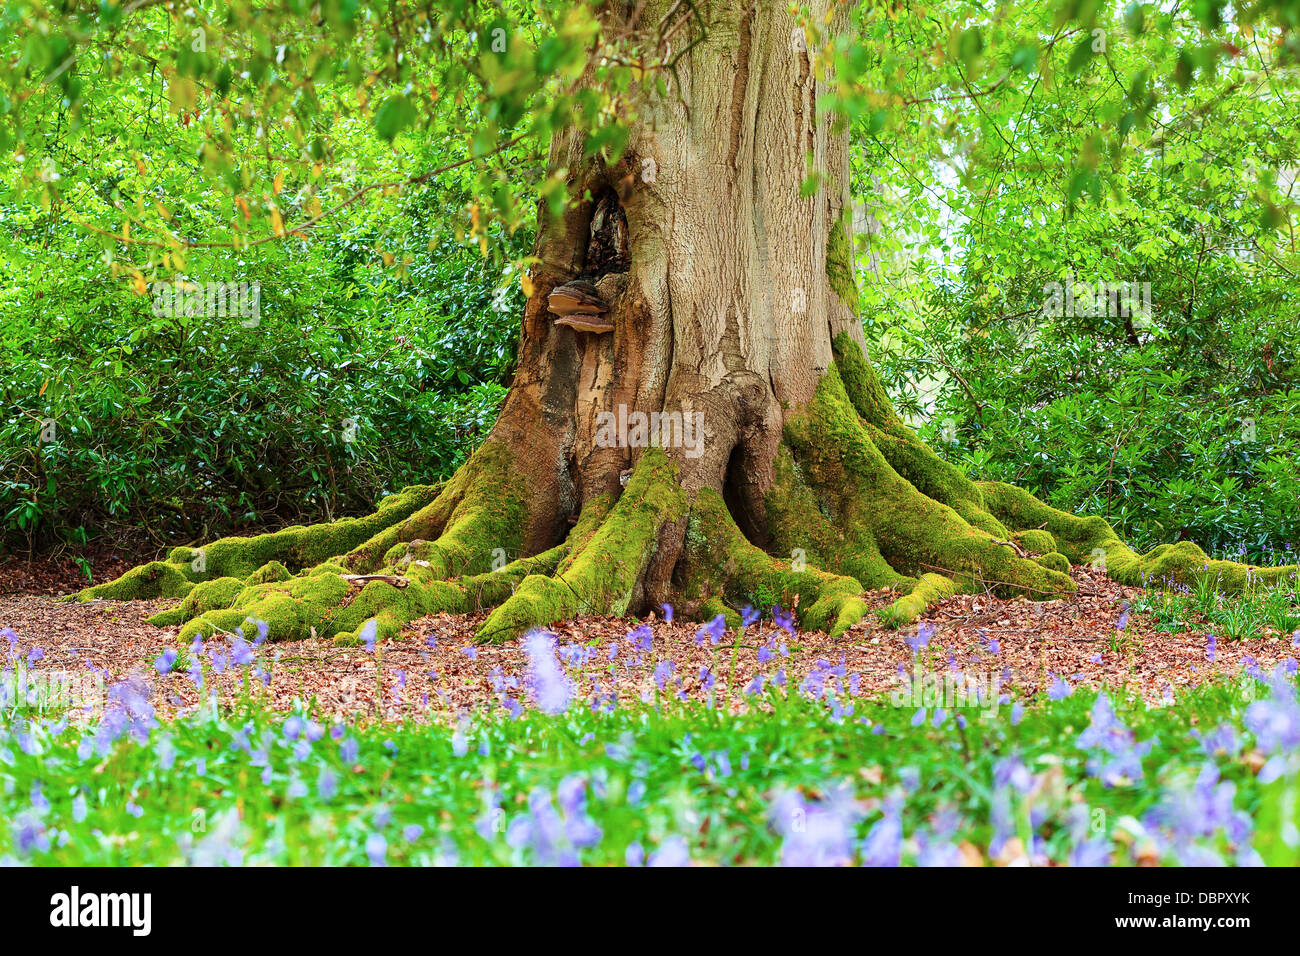 Close up of the moss covered trunk of a mature tree in a bluebell wood - Stock Image